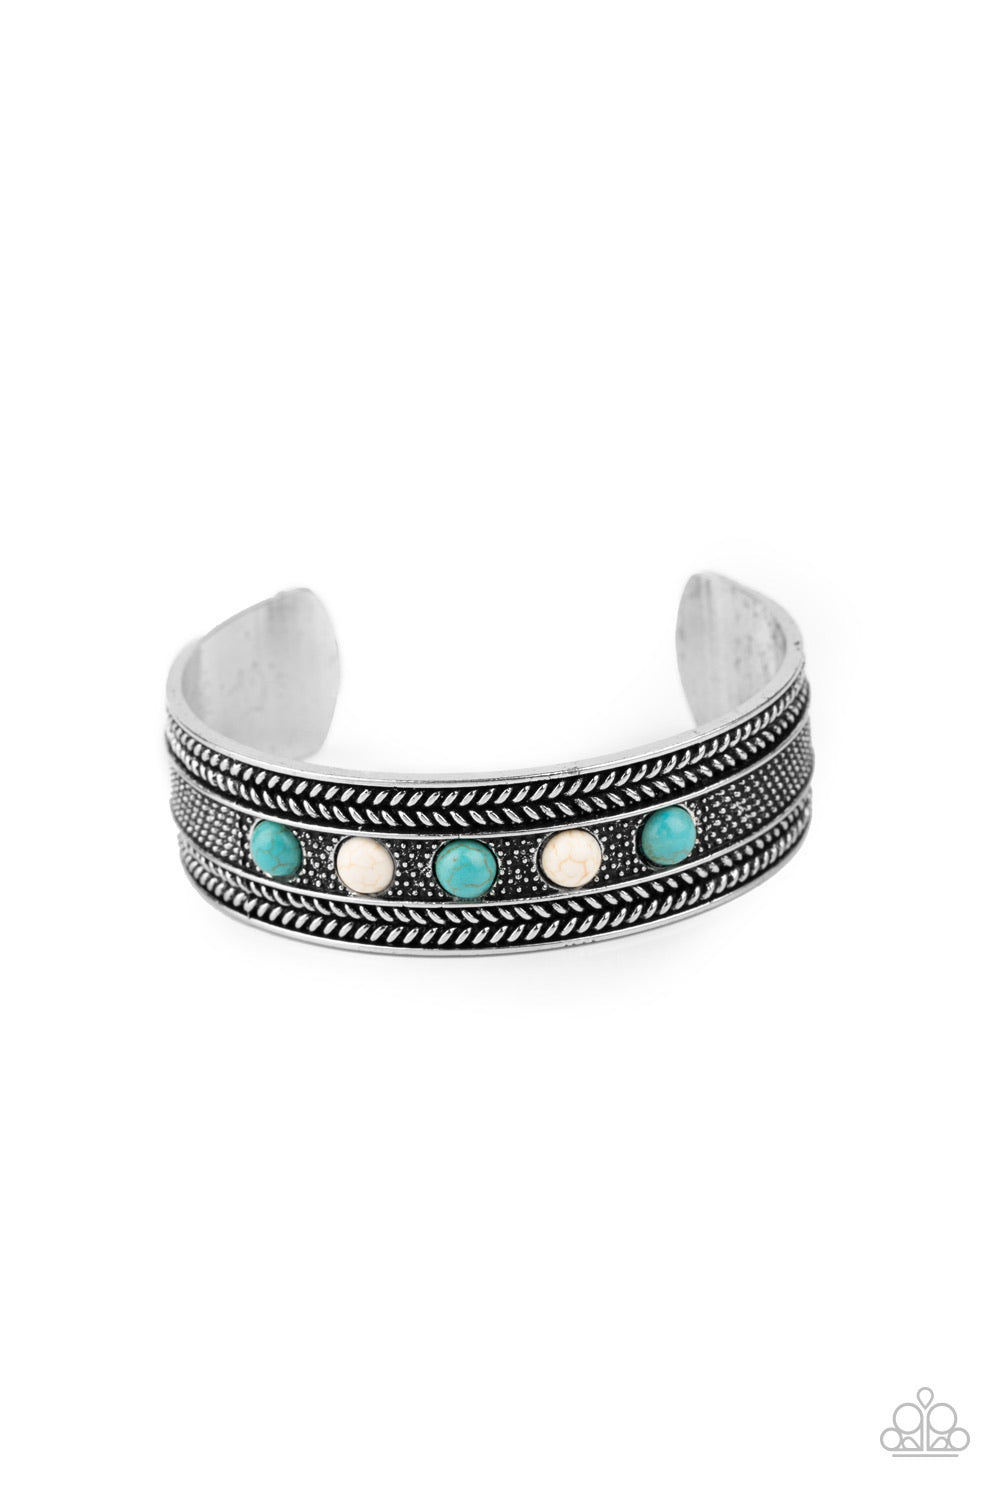 Quarry Quake - Blue Stone Bracelet - Paparazzi Accessories